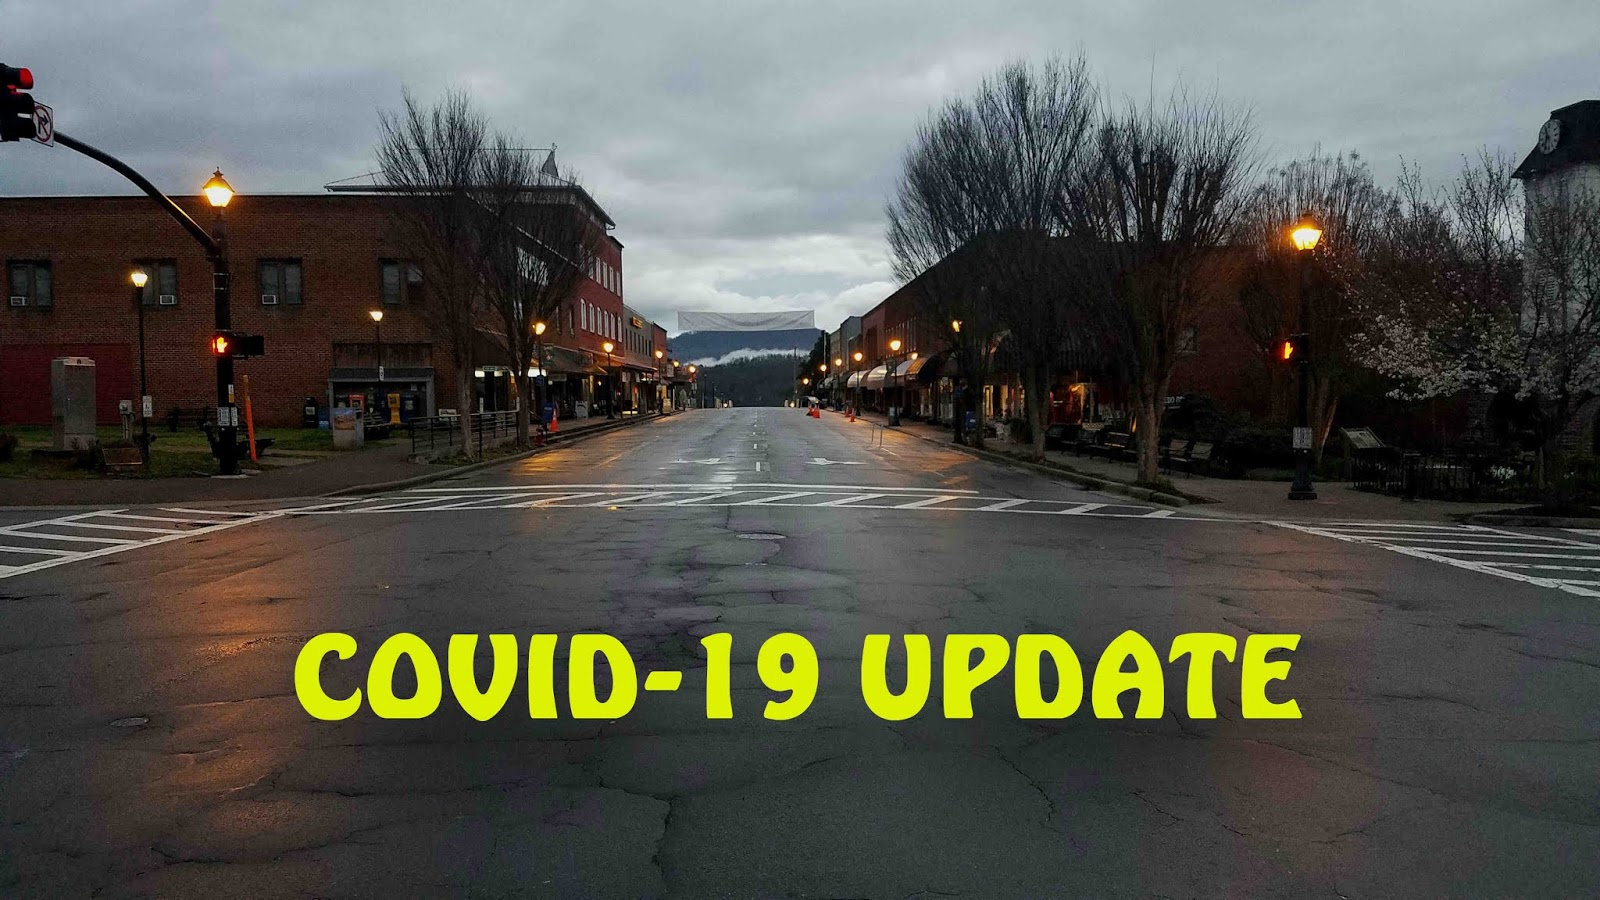 COVID-19 Update for Friday, April , 2020